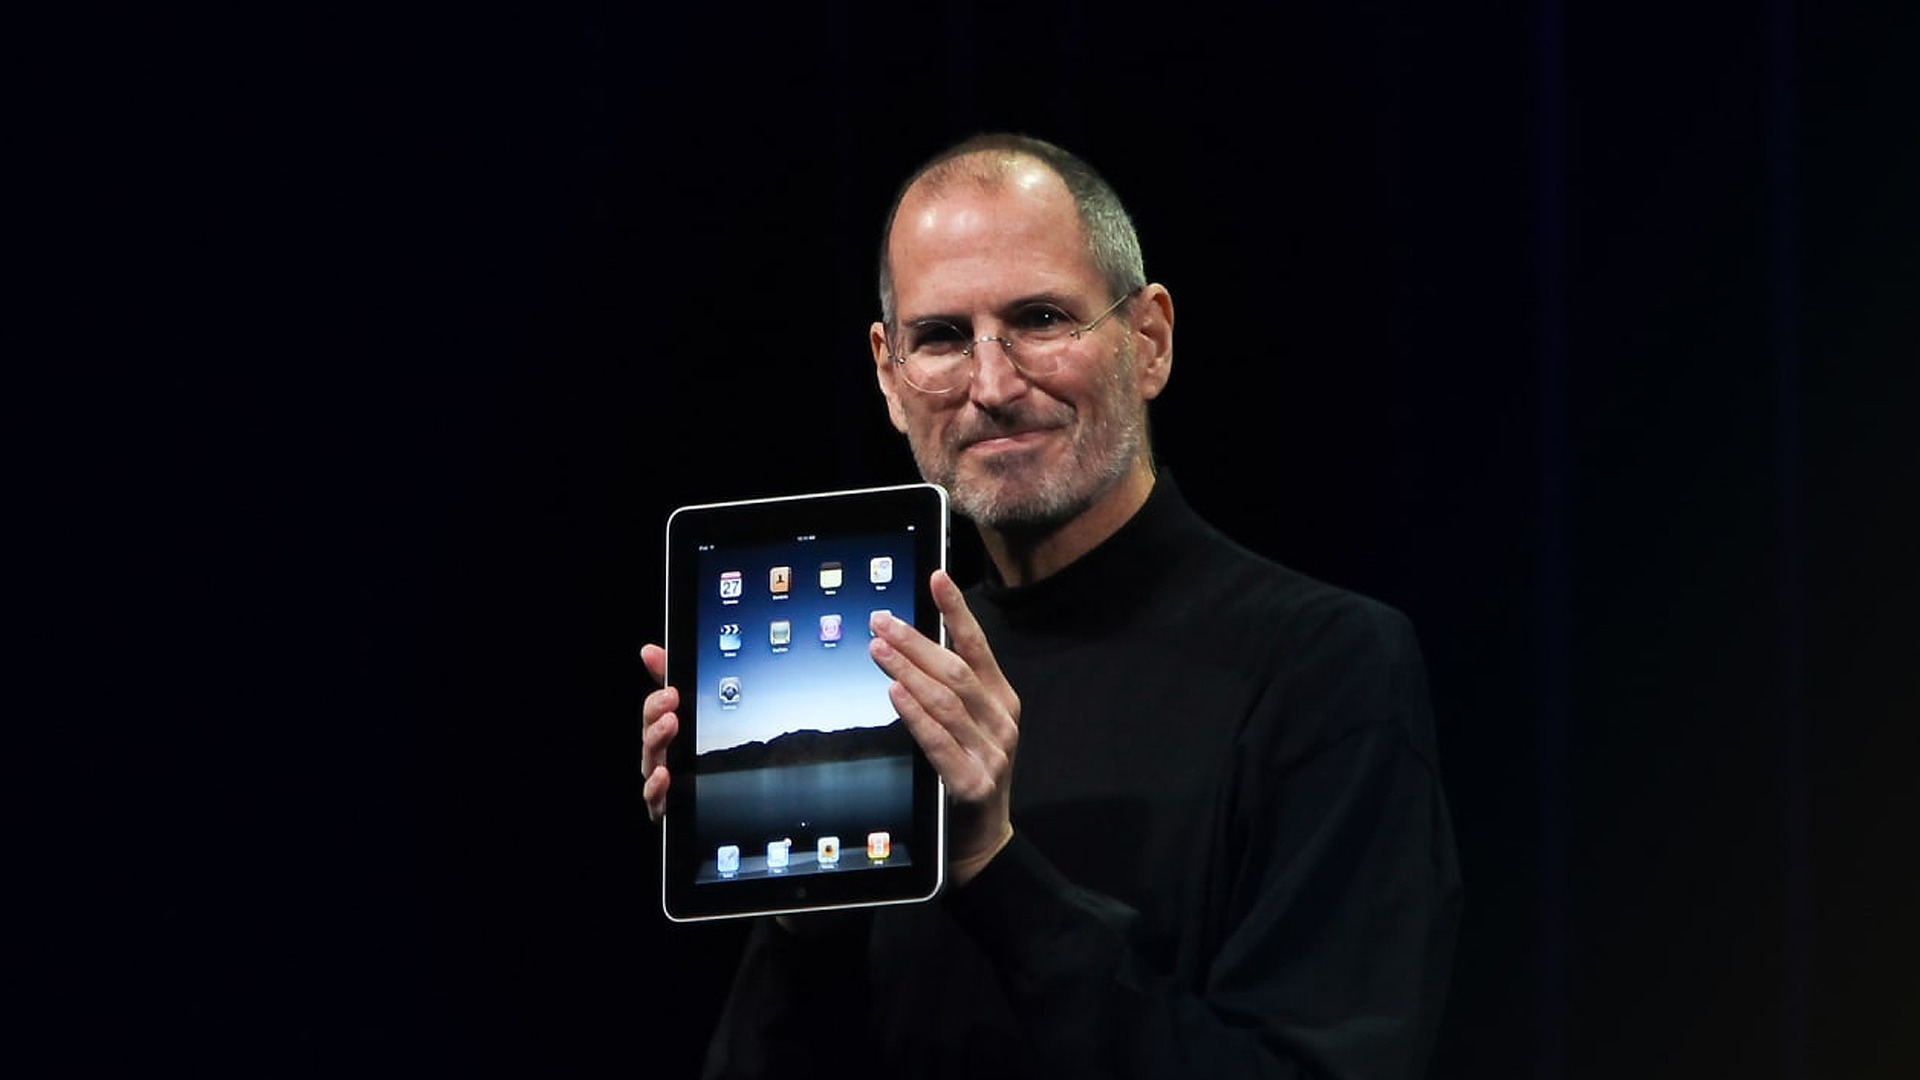 prvy ipad steve jobs